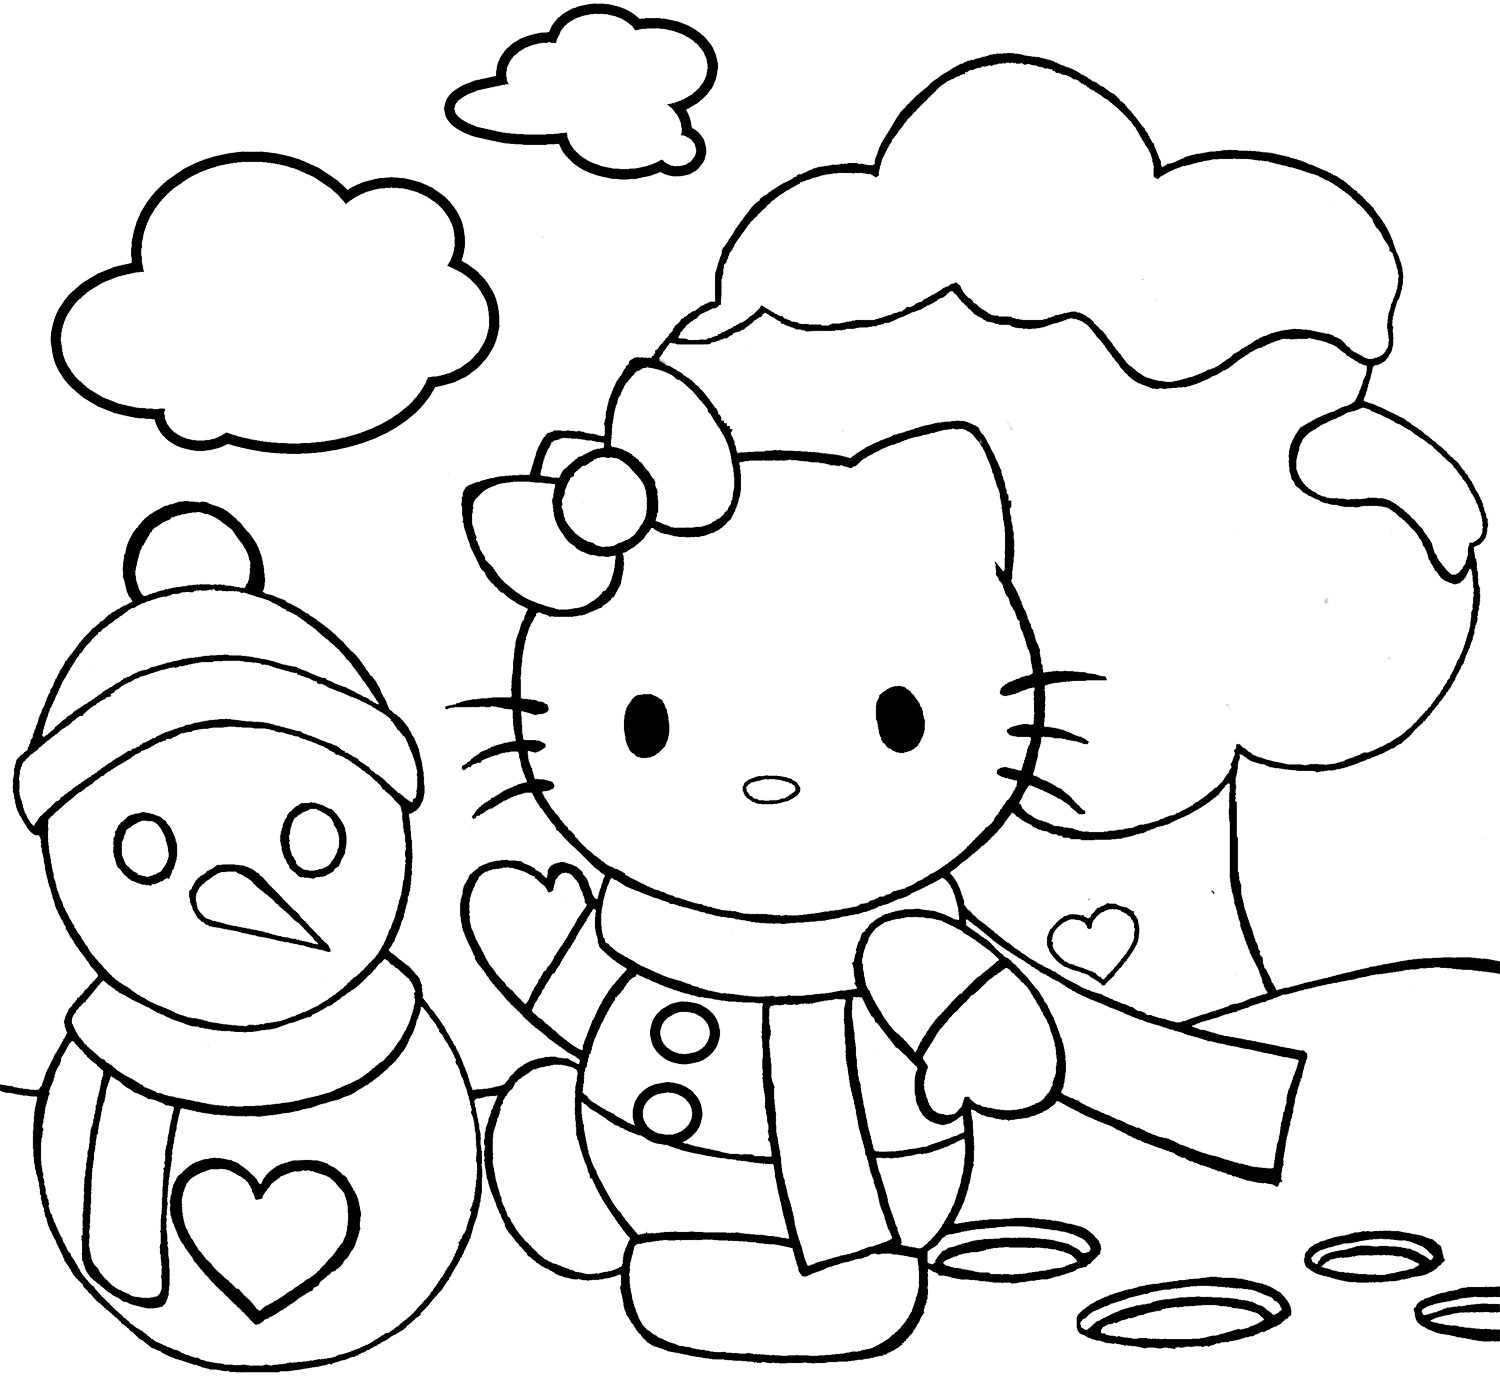 Hello Kitty Christmas Coloring Pages - Best Coloring Pages For Kids